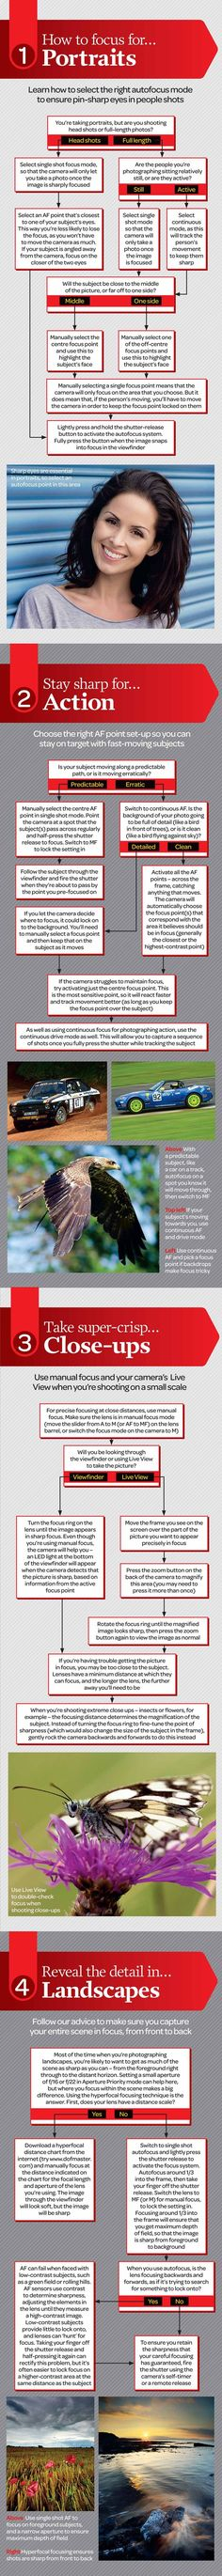 Photography Tips | How to focus your camera for any subject or scene: free photography cheat sheet